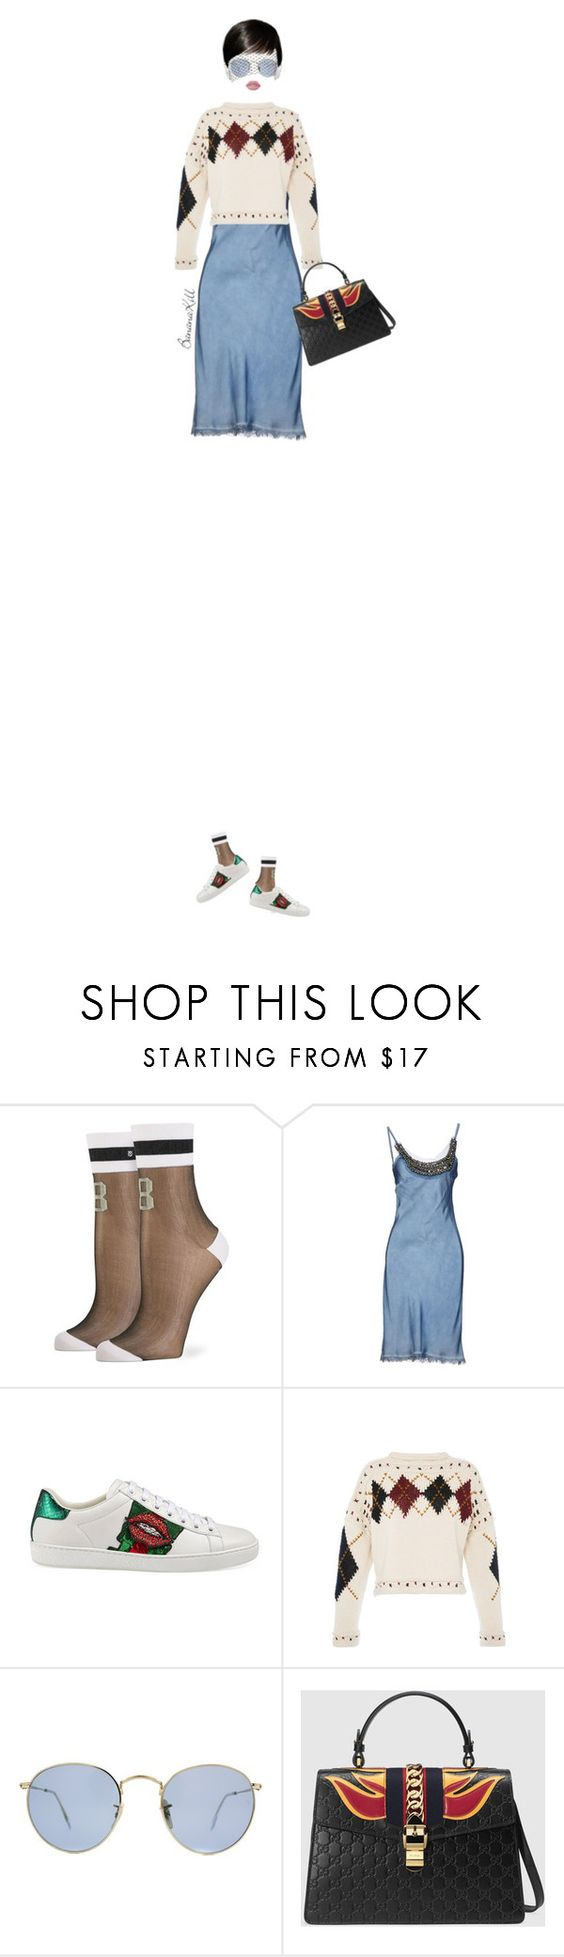 """Senza titolo #1401"" by bananakill ❤ liked on Polyvore featuring Stance, Gucci, Isabel Marant, Ray-Ban and Lime Crime"